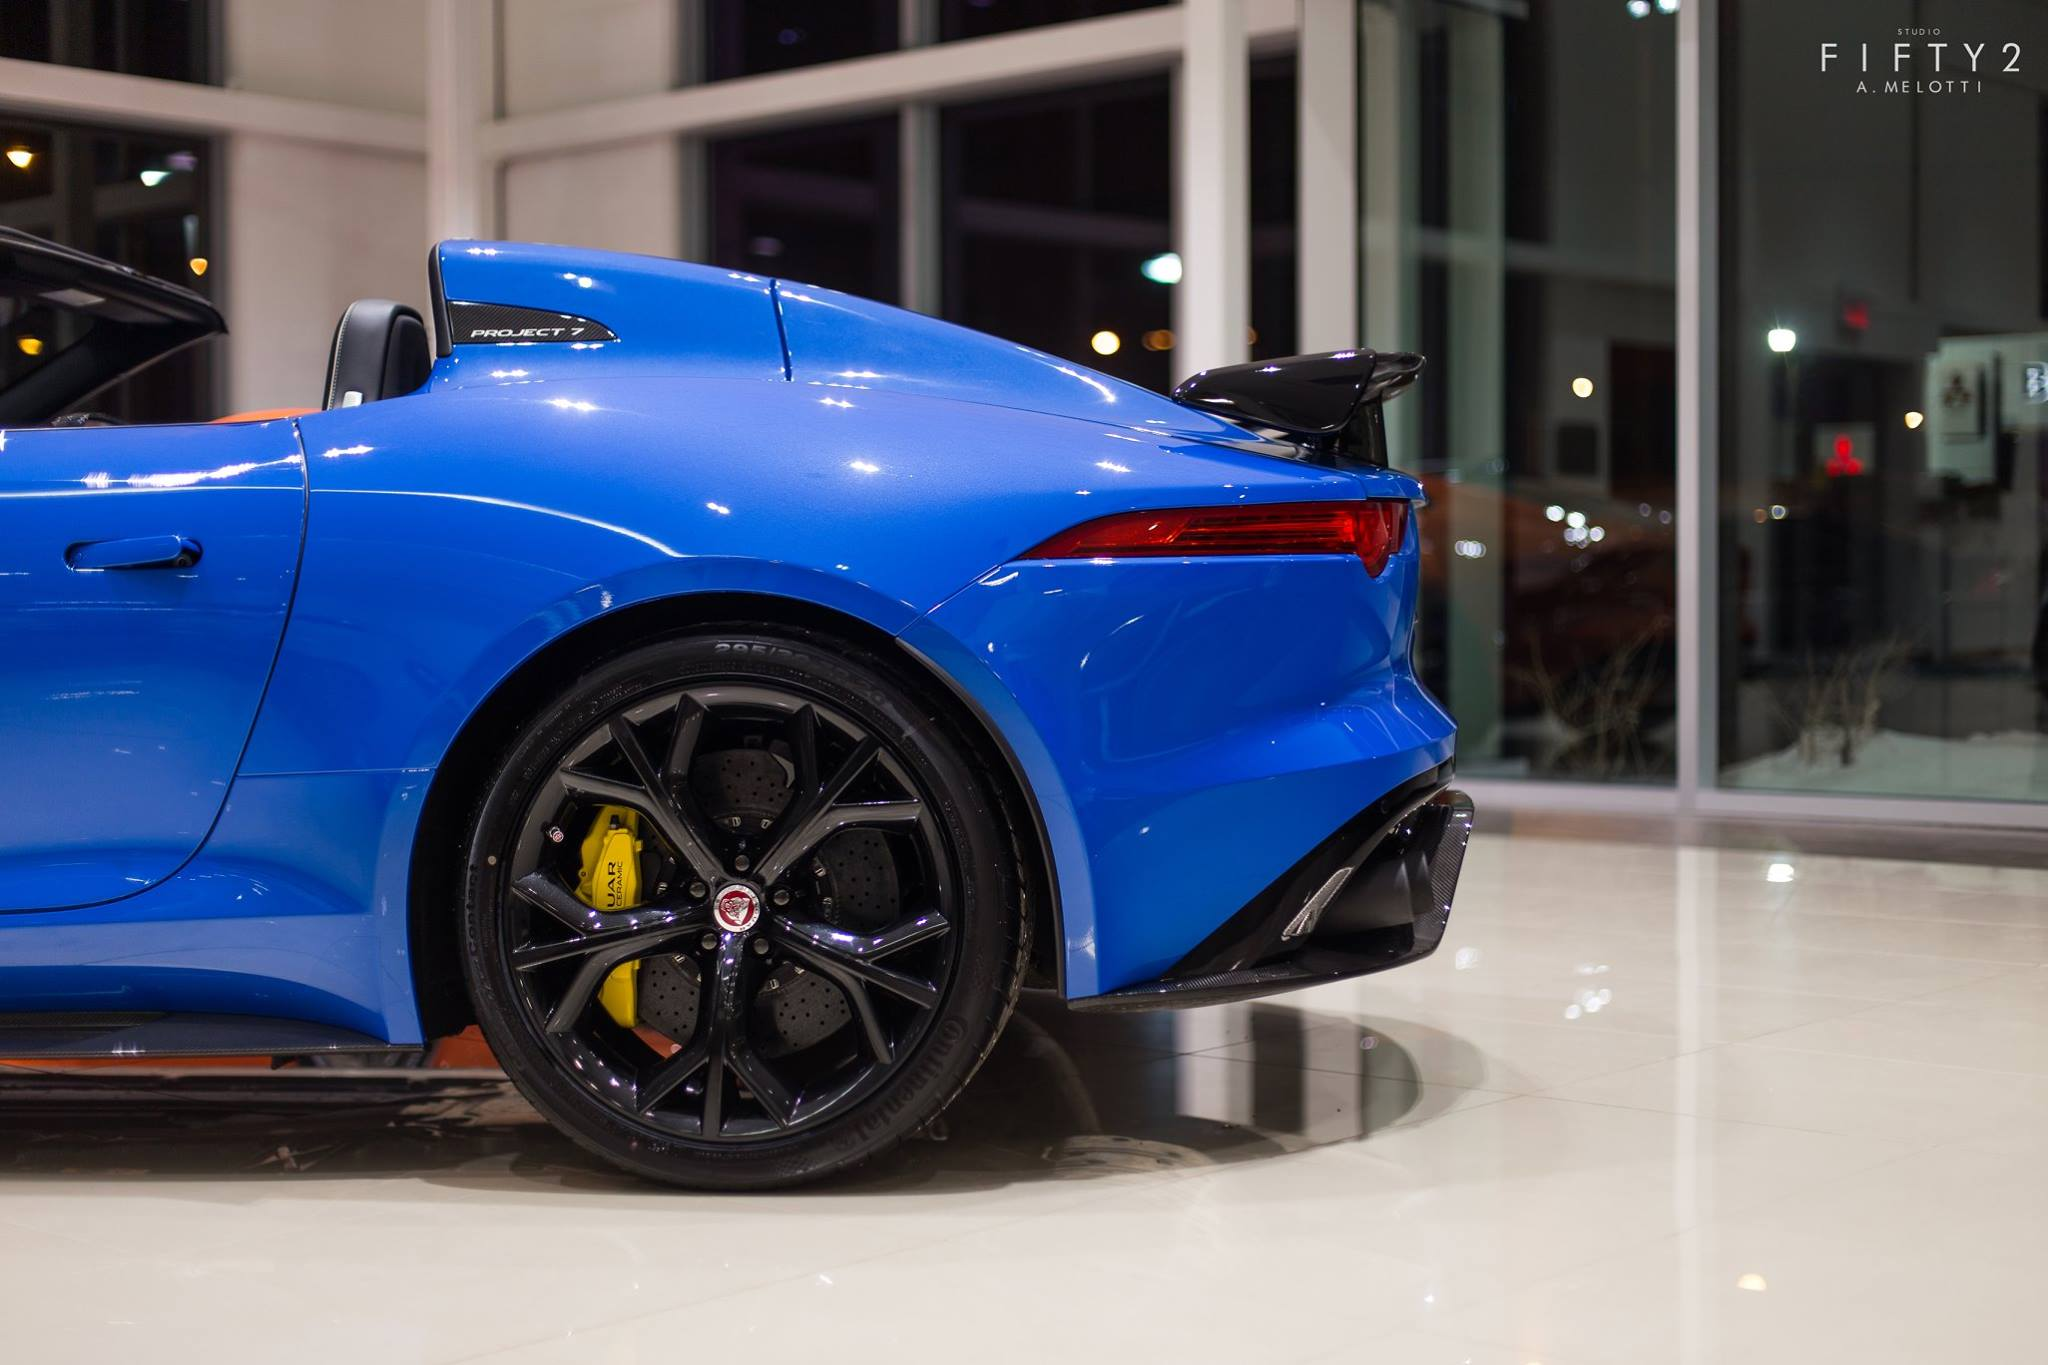 1 of 7 jaguar f type project 7 in canada shines in blue gtspirit. Black Bedroom Furniture Sets. Home Design Ideas